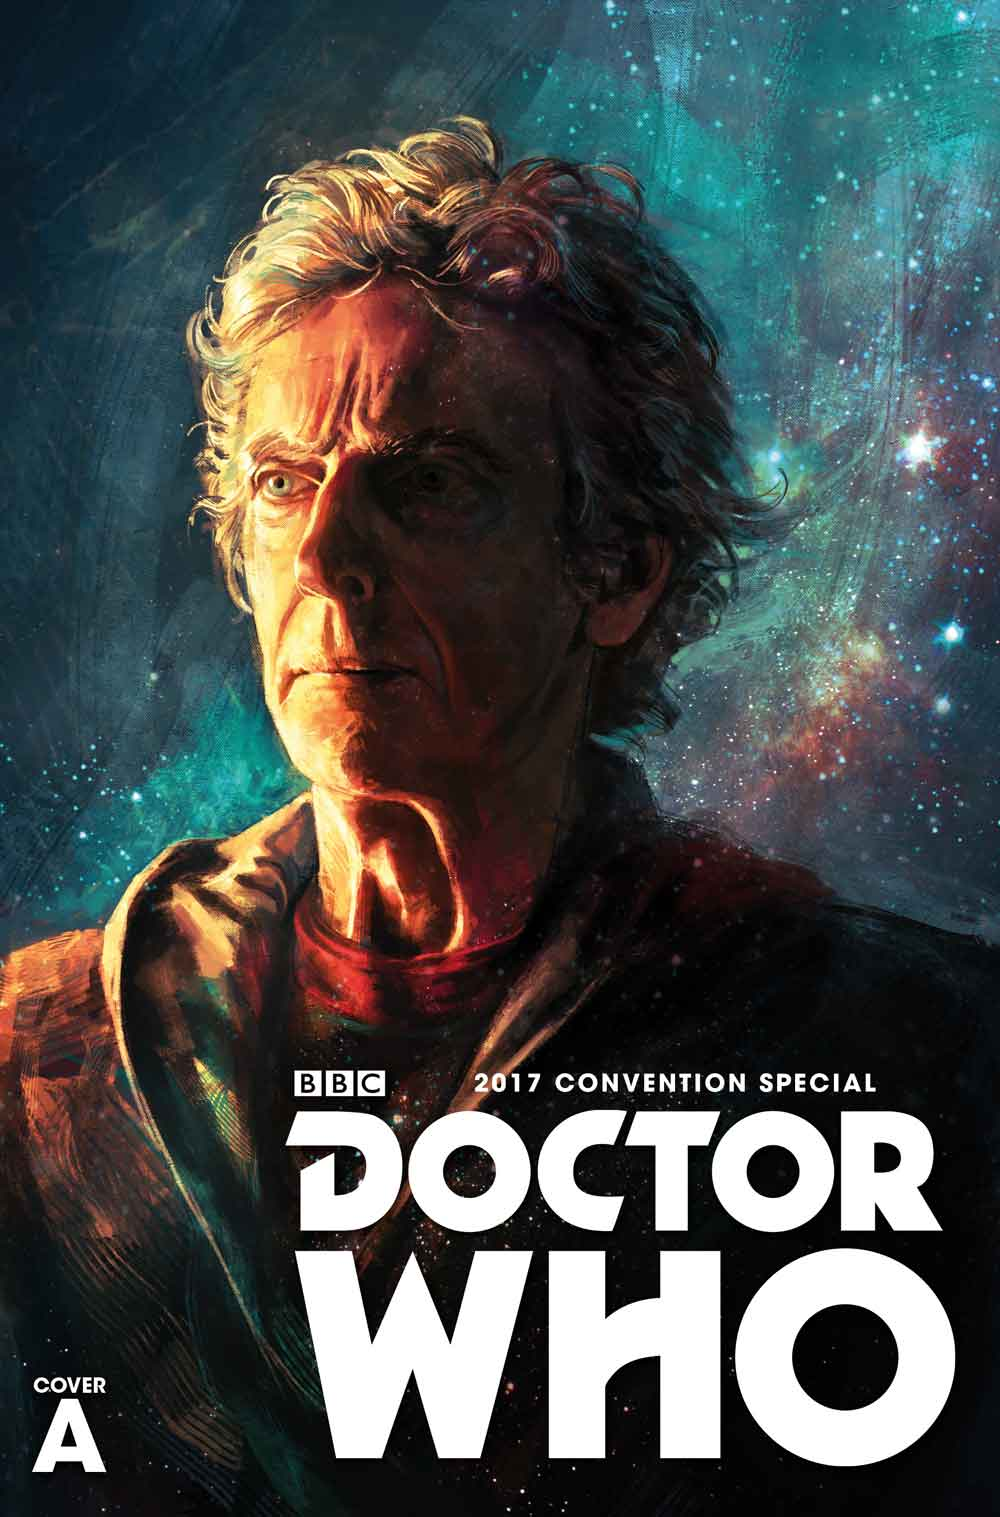 TITAN COMICS DOCTOR WHO SDCC CONVENTION SPECIAL COVER BY Alice X. Zhang